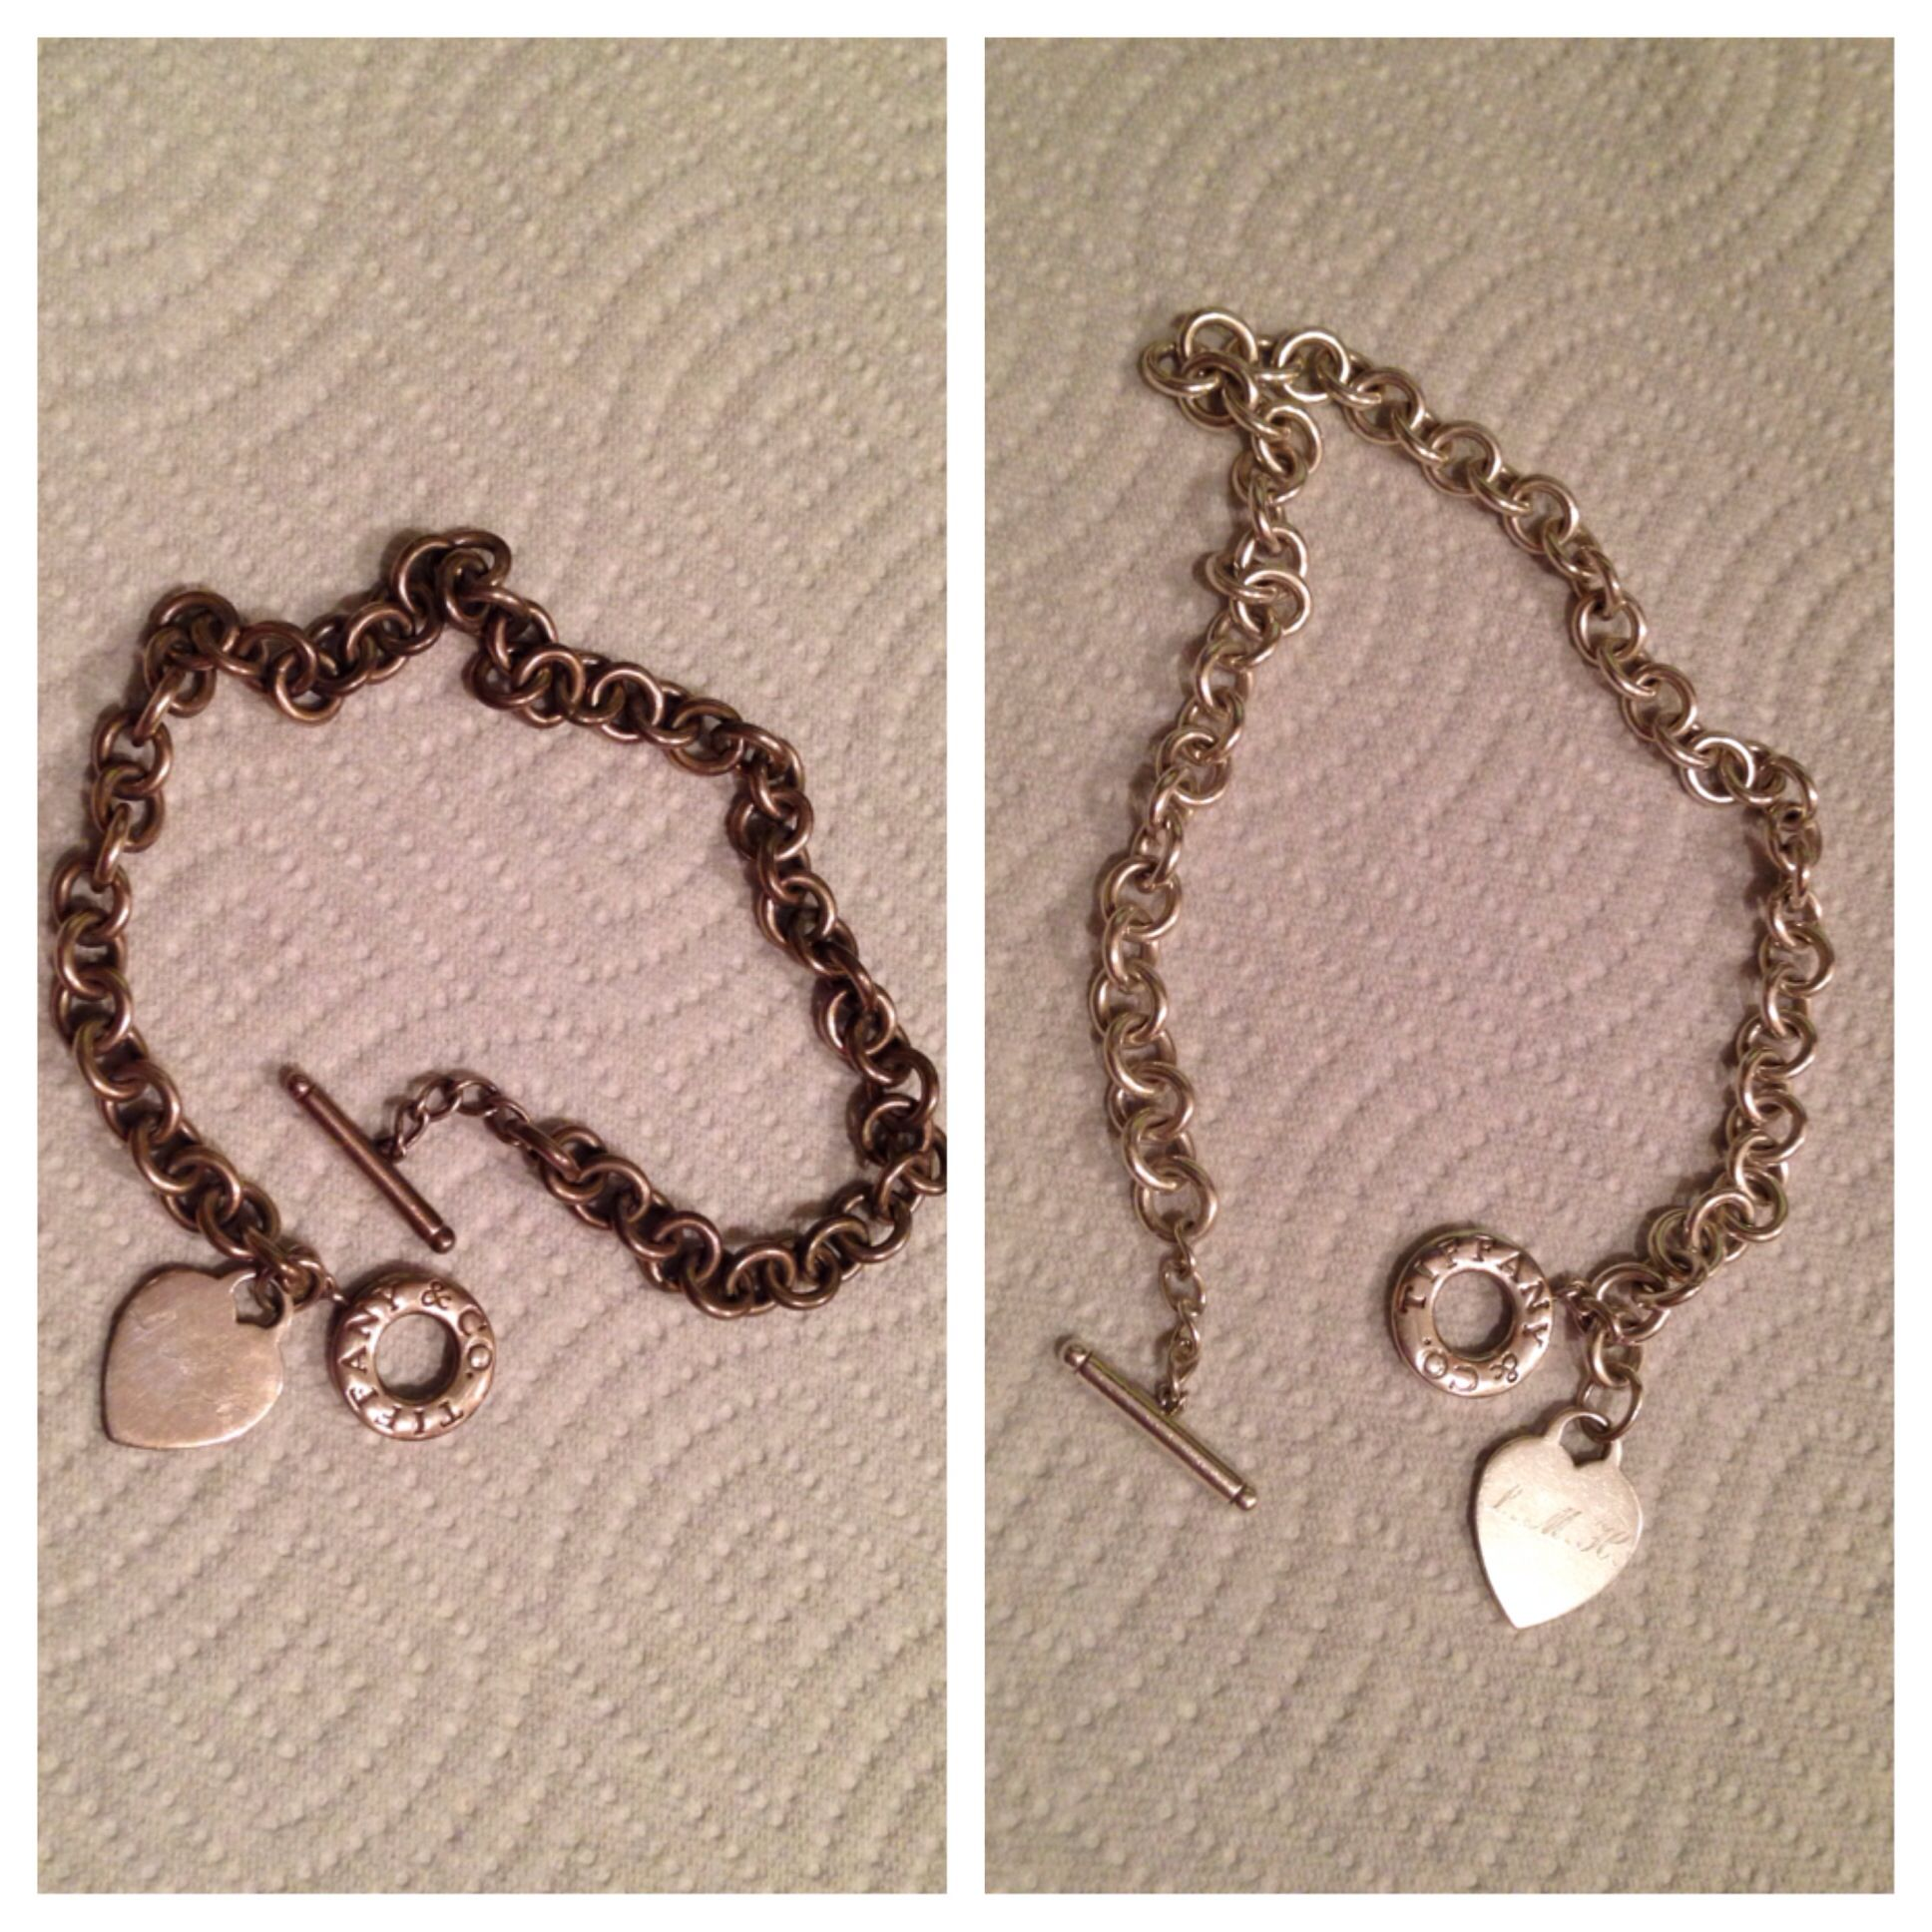 The Easy Home Remedy To Fix Tarnished Silver Worked Perfectly To